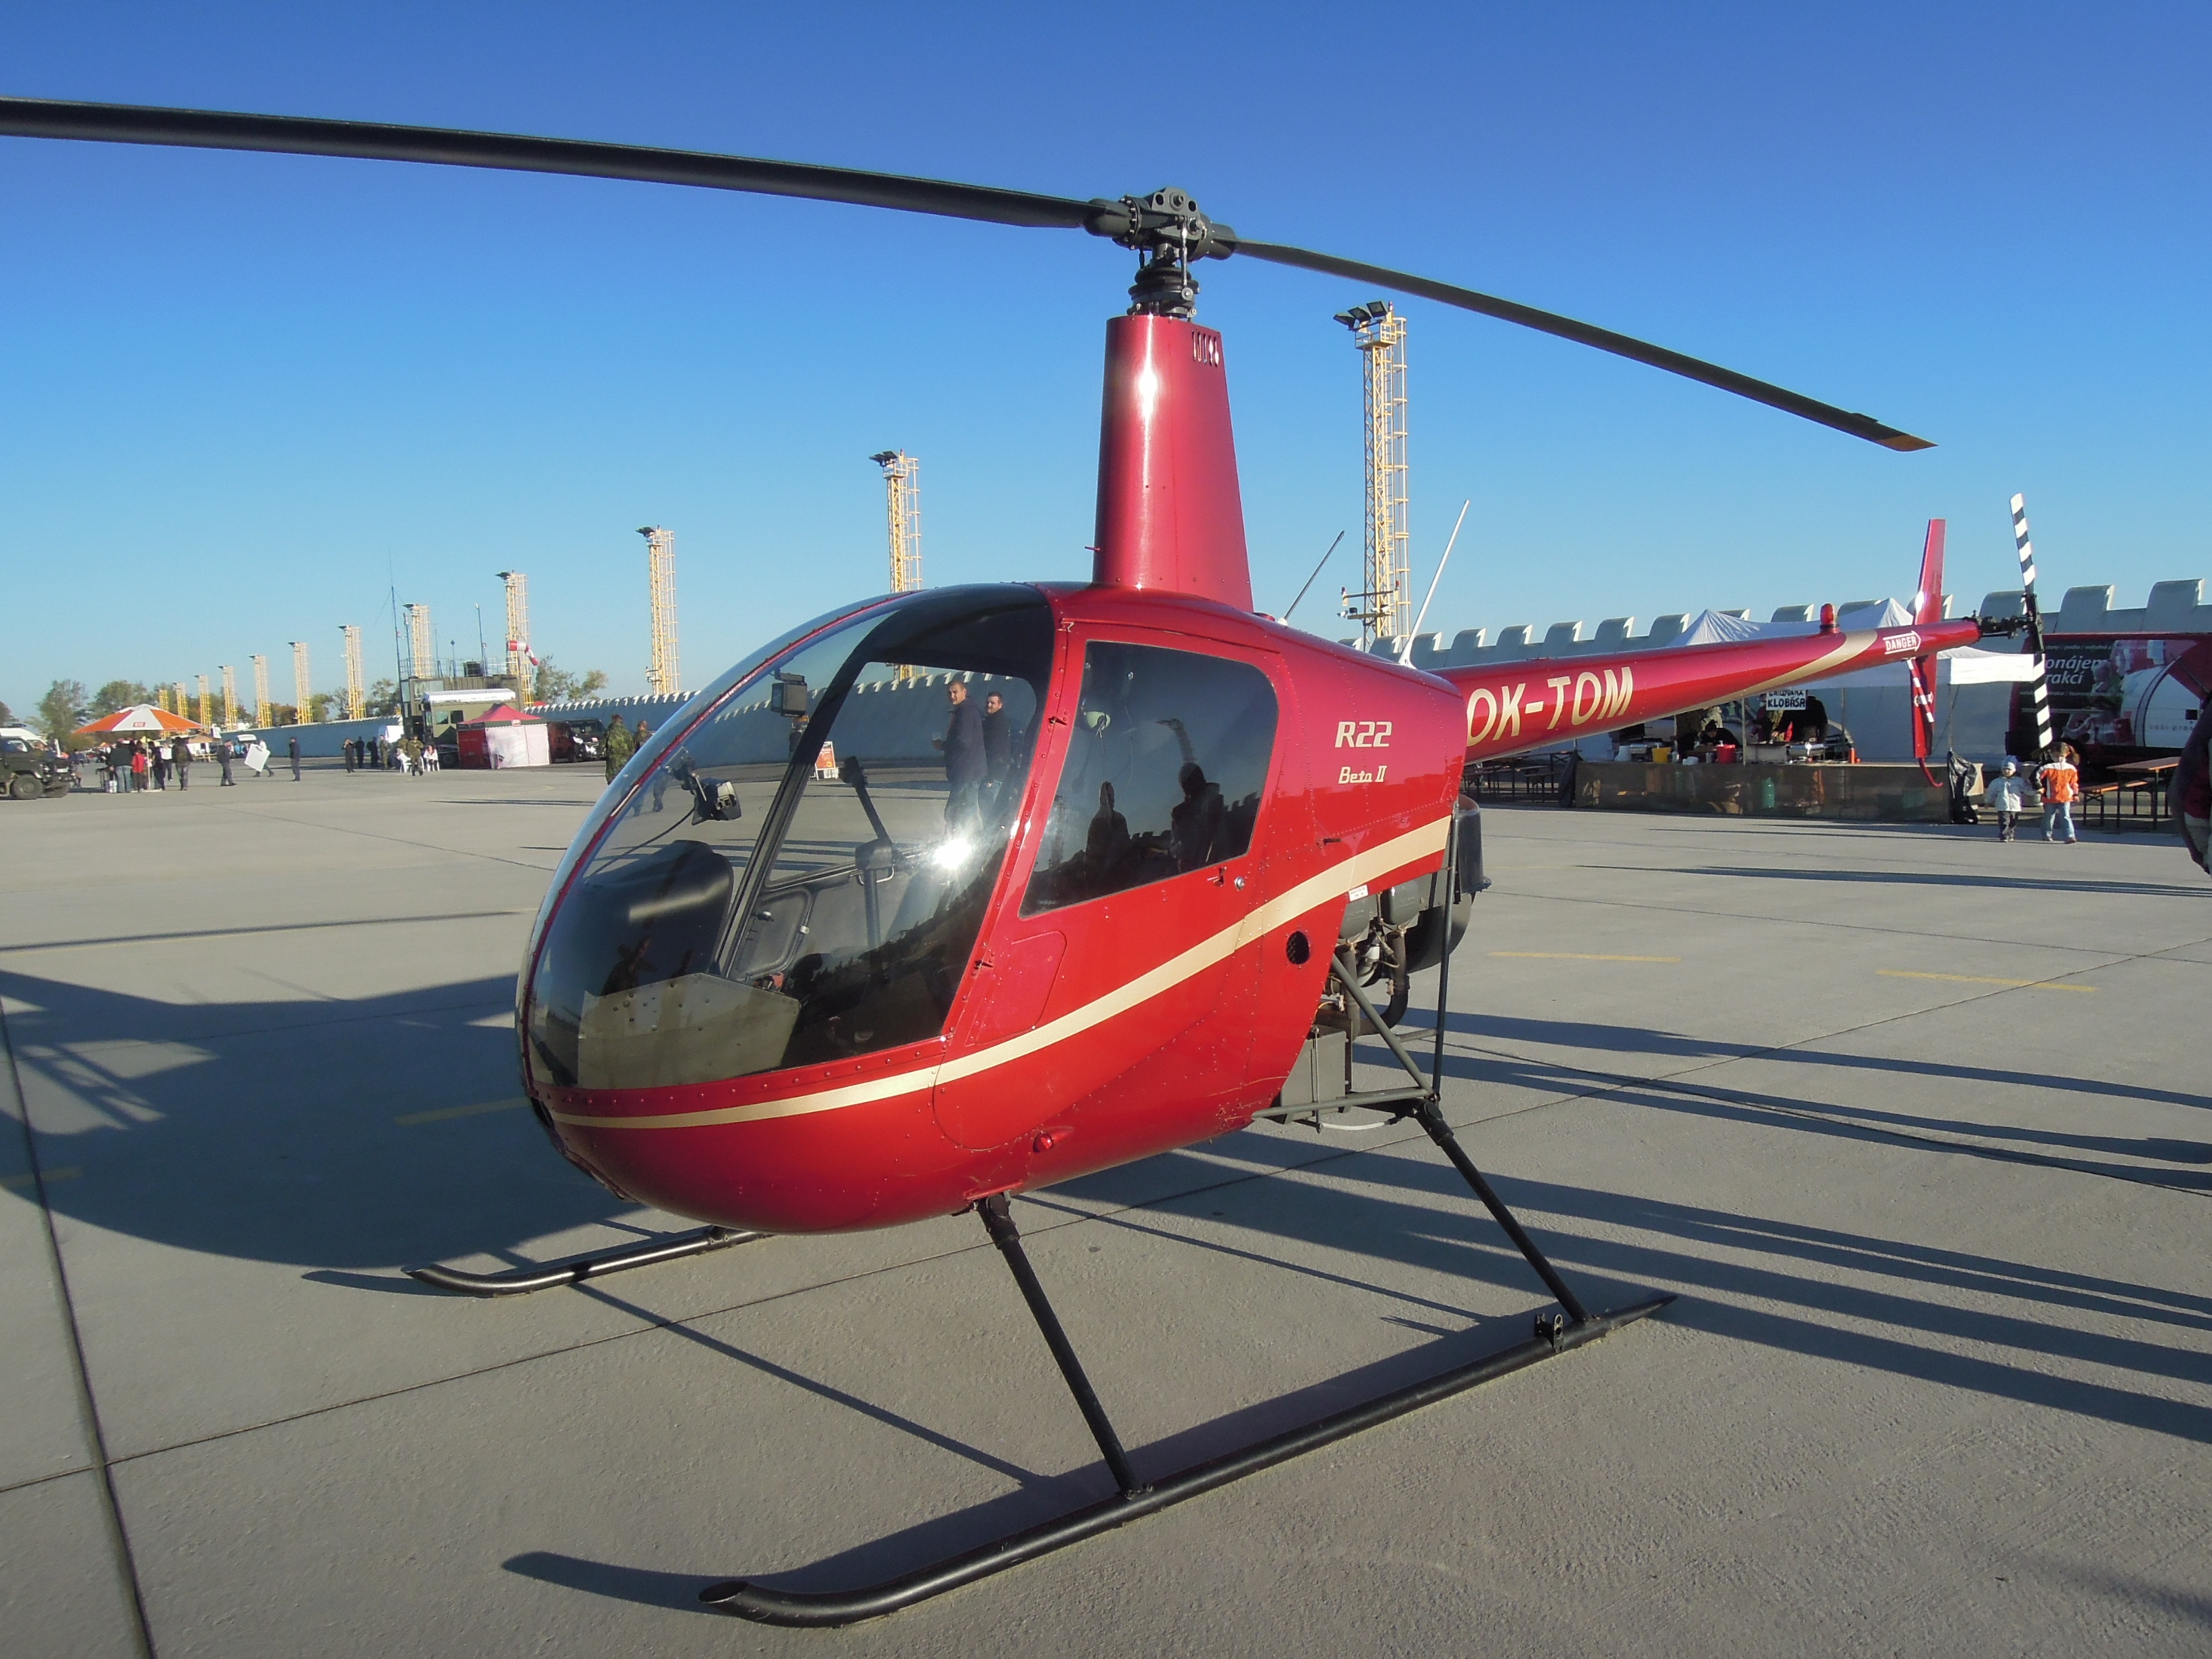 bell helicopter tail boom with File Robinson R22 Beta Ii  Ok Tom on 1065 in addition Q0212a further Inside Sleekest Offshore Crew Helicopter Will Never Fly likewise 92 also Bell 47.